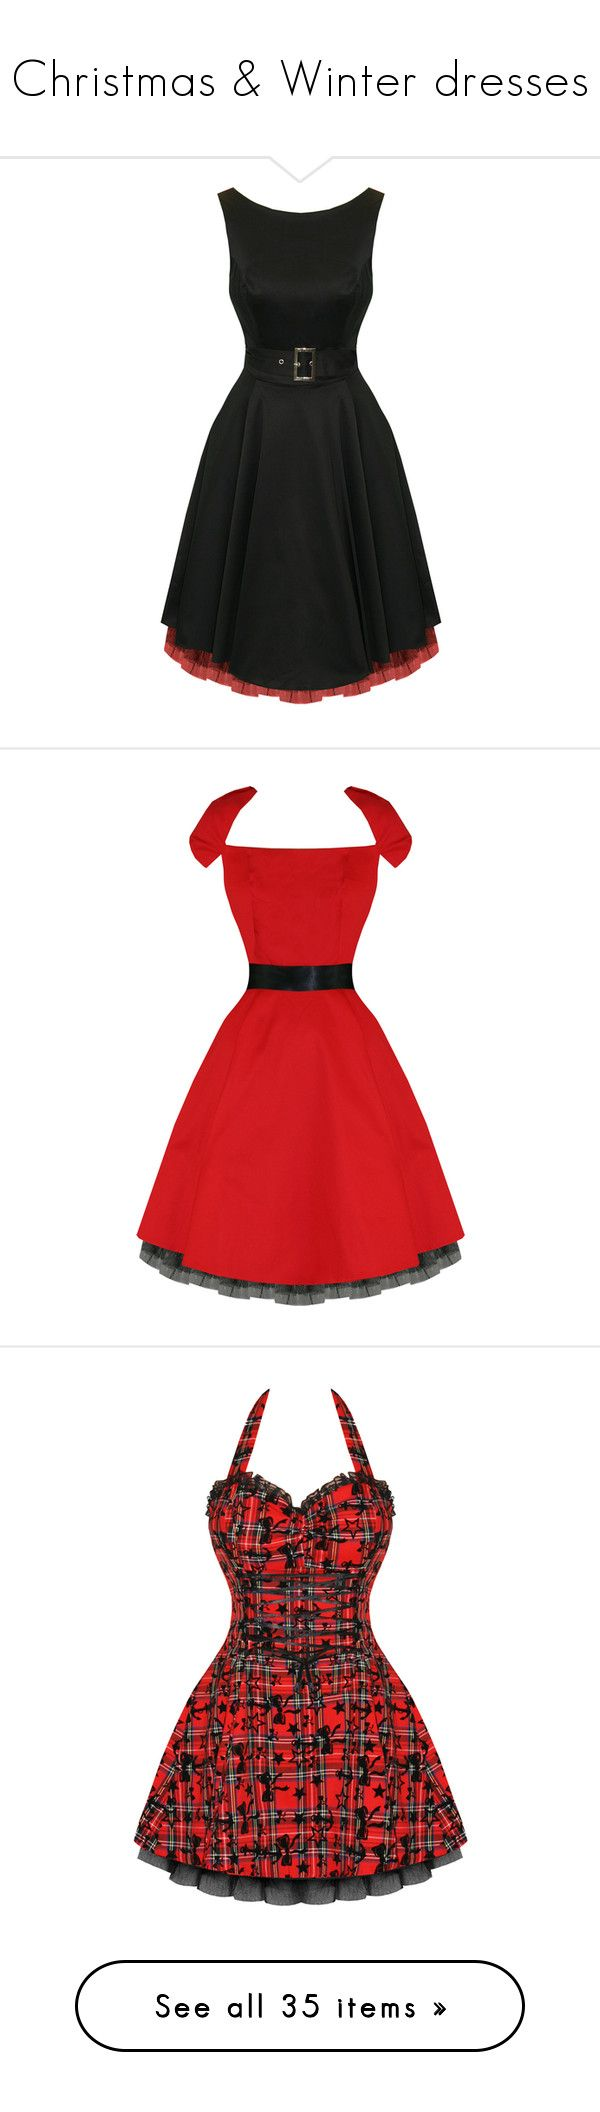 """""""Christmas & Winter dresses"""" by mietz ❤ liked on Polyvore featuring dresses, gothic lolita dress, gothic dresses, vintage prom dresses, vintage cocktail dresses, prom dresses, red retro dress, red vintage dress, gothic prom dresses and retro vintage dresses"""